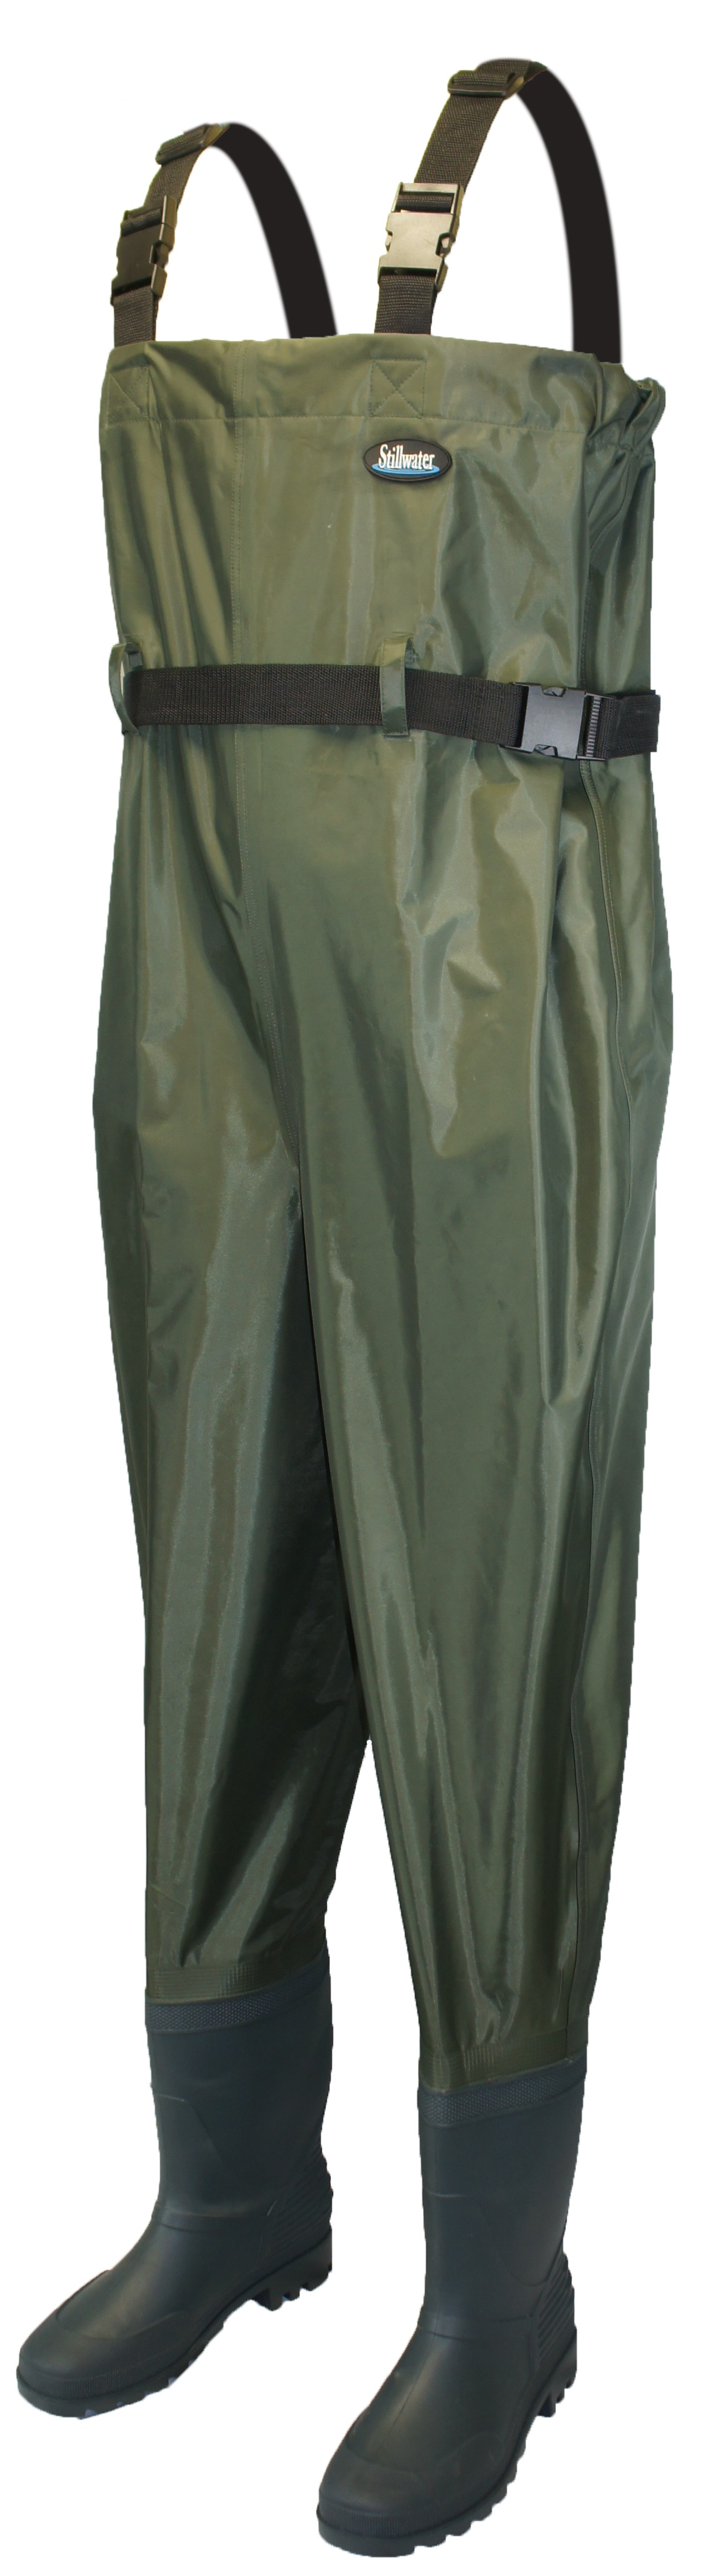 Stillwater classic pvc bootfoot chest waders glasgow for Chest waders for fishing